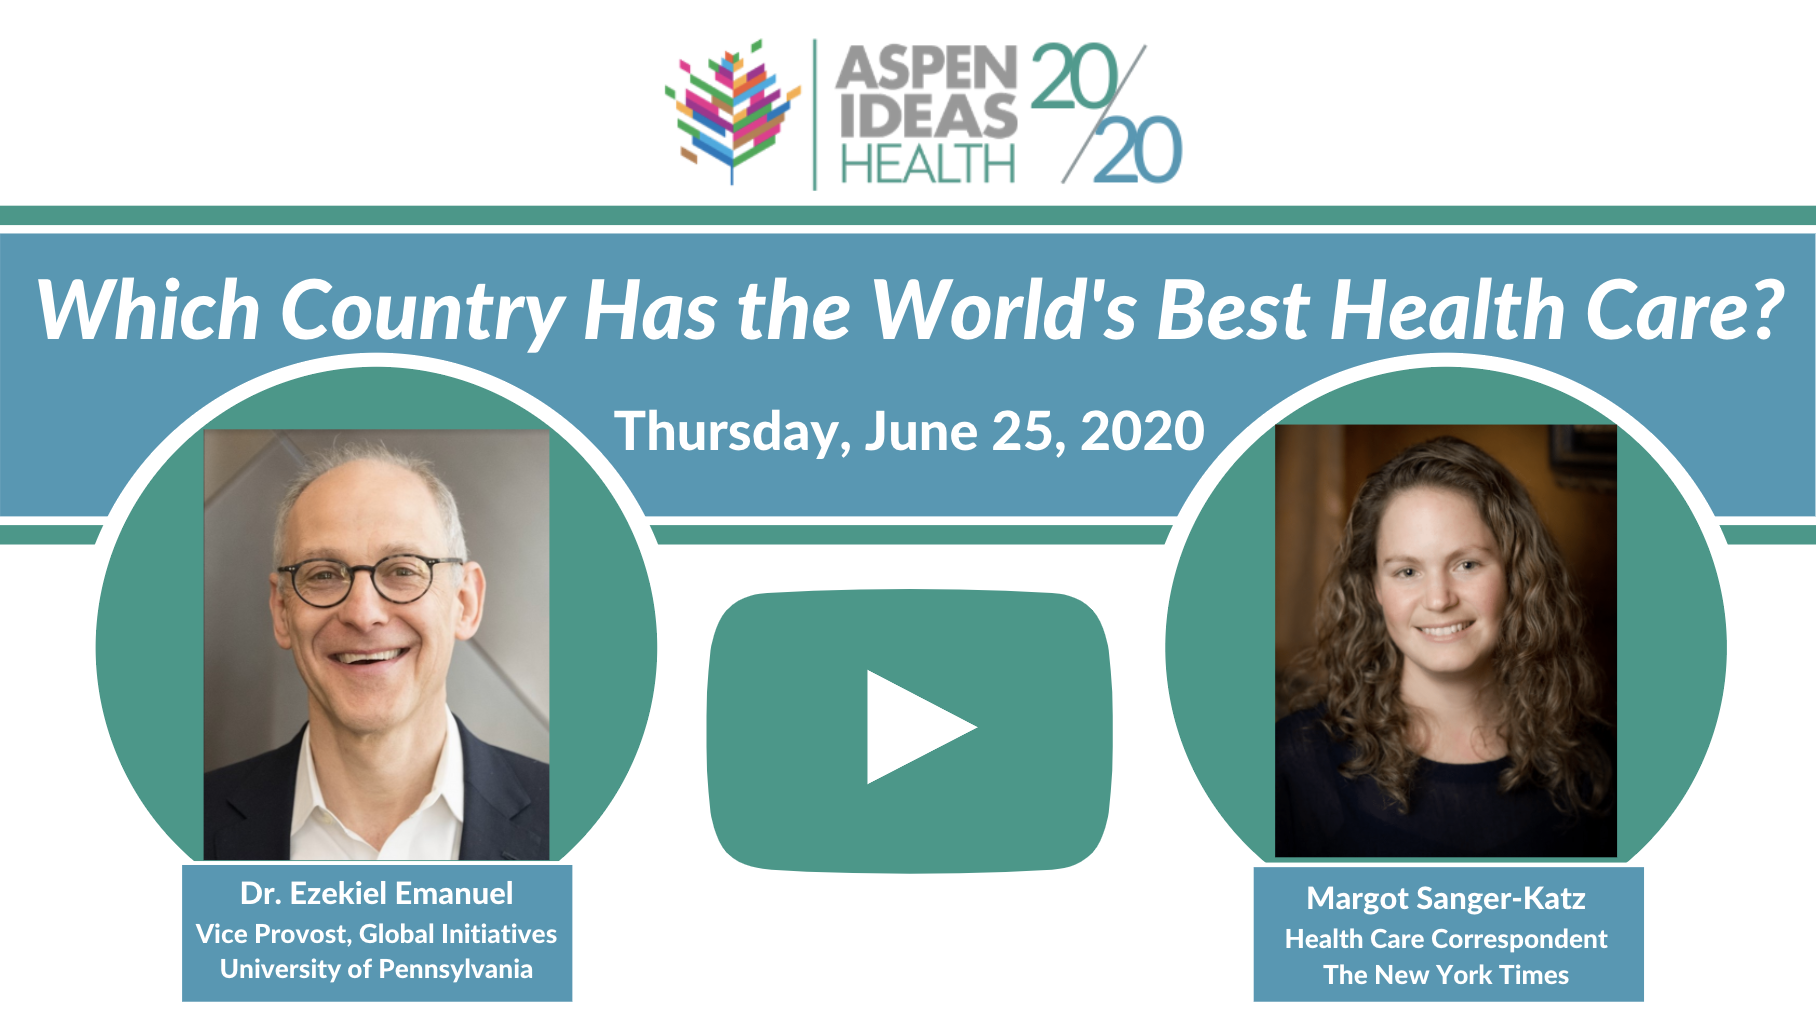 Aspen Ideas: Health Zeke Emanuel Margot Sanger-Katz